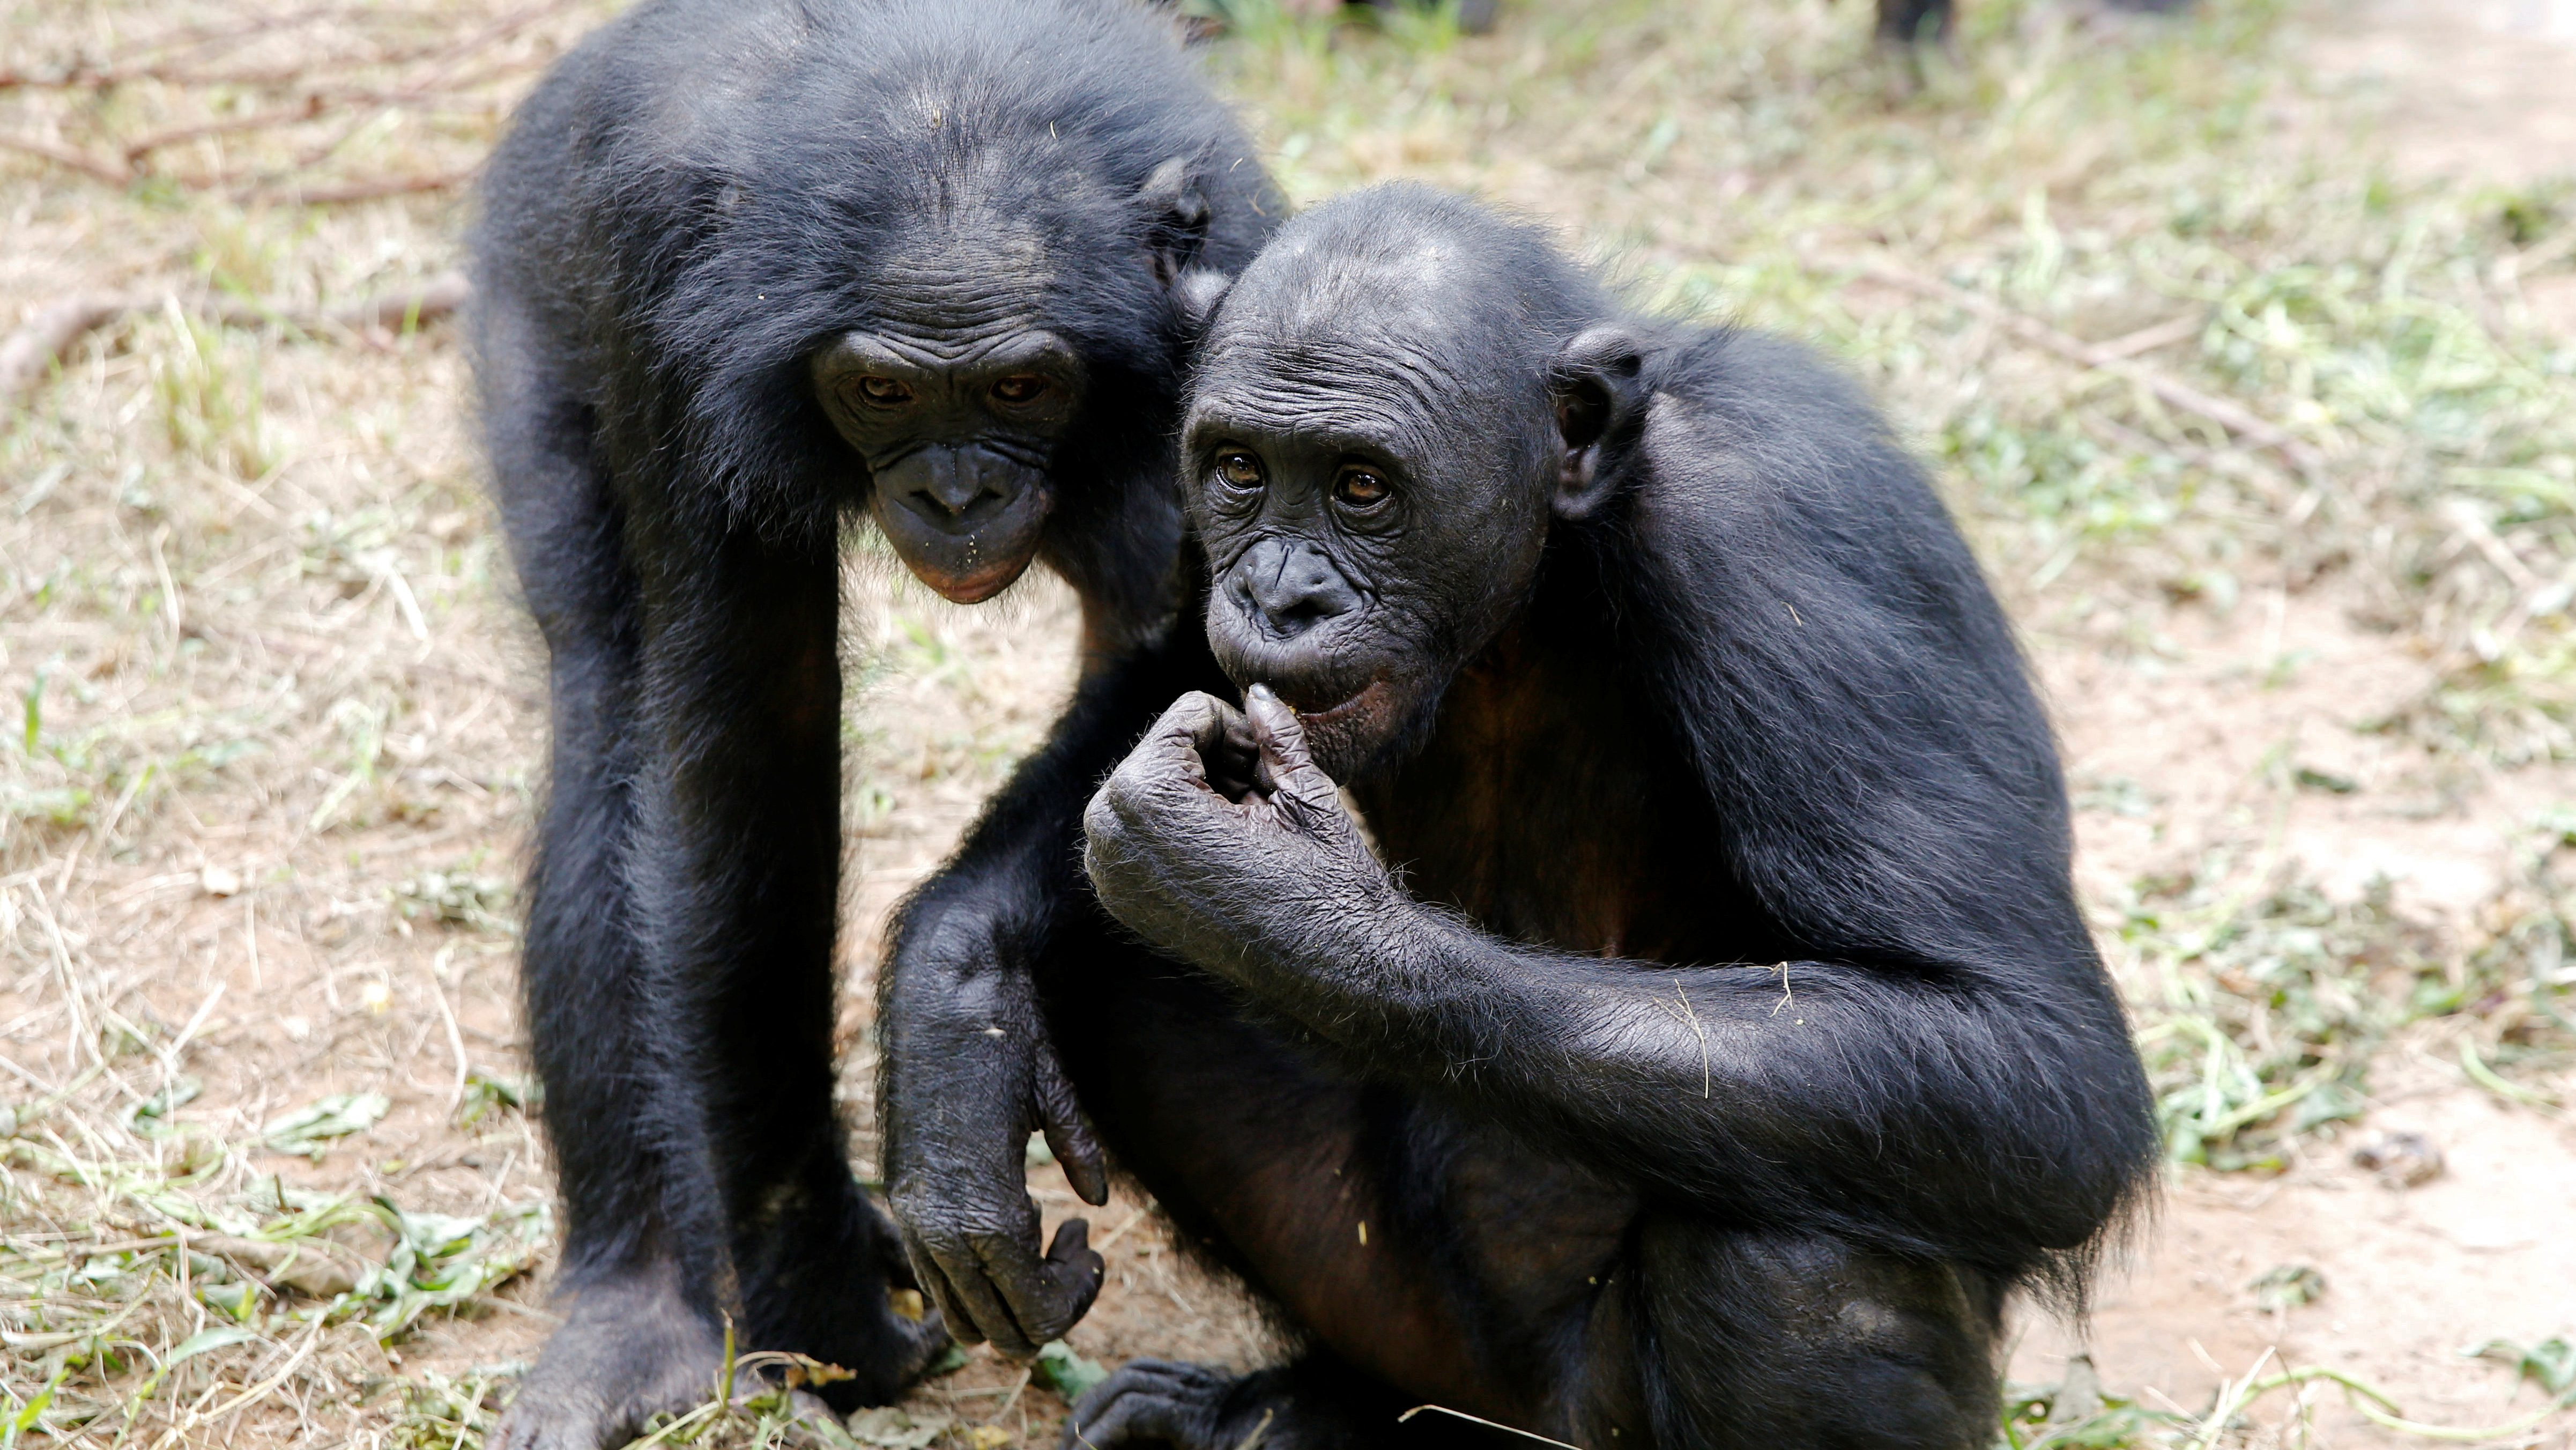 Bonobo ape mothers push their sons to find sex partners